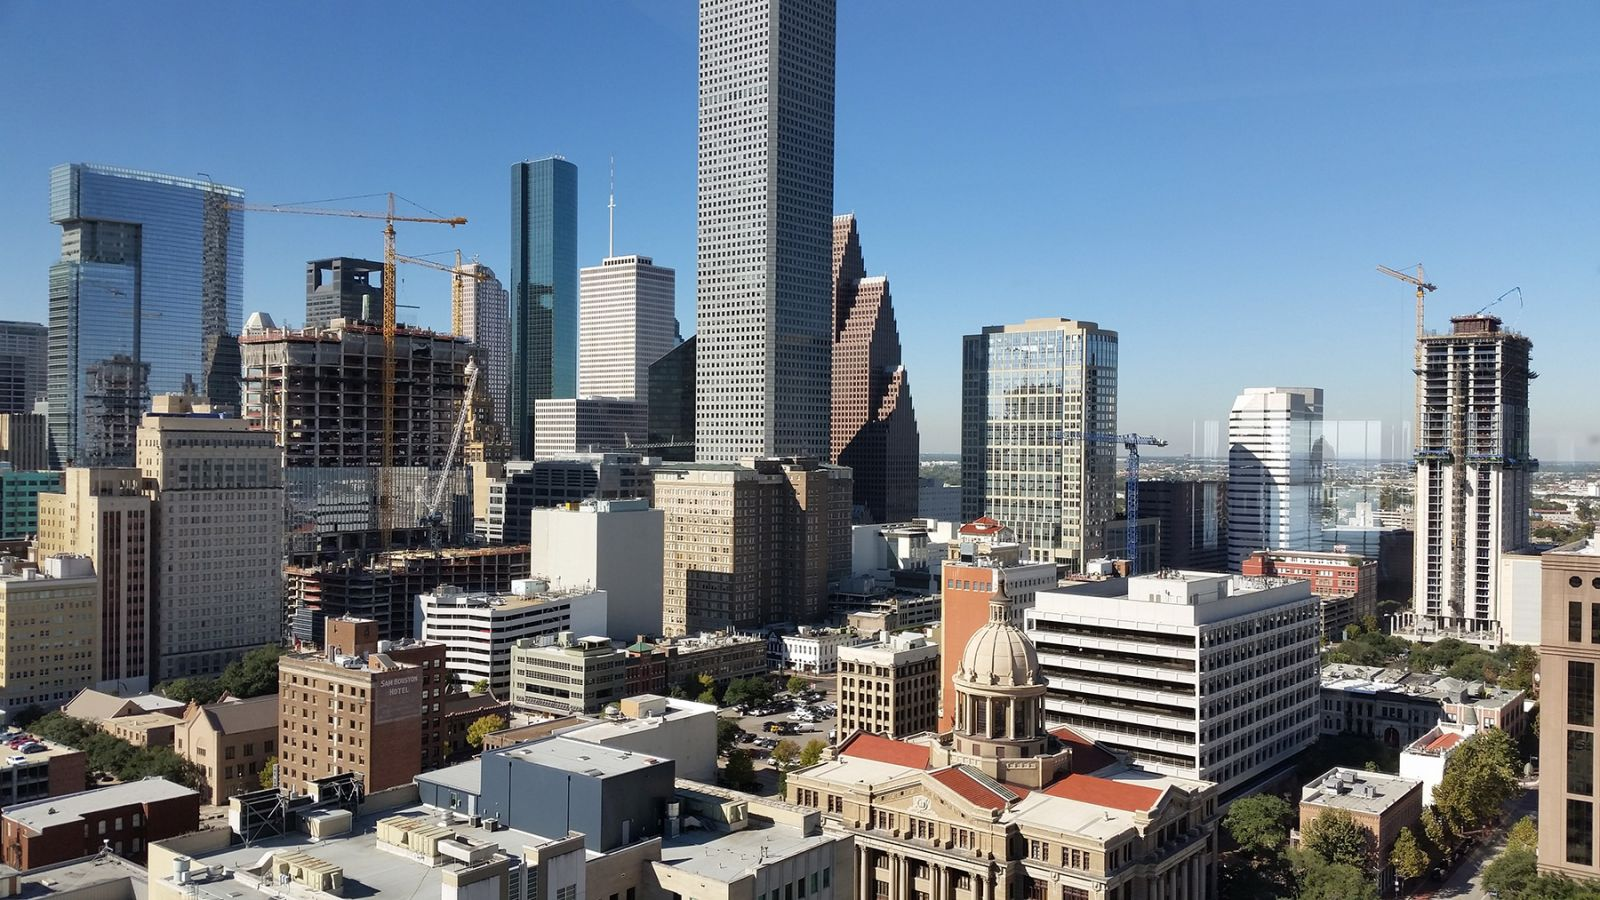 The 15 Best place to take pictures in houston